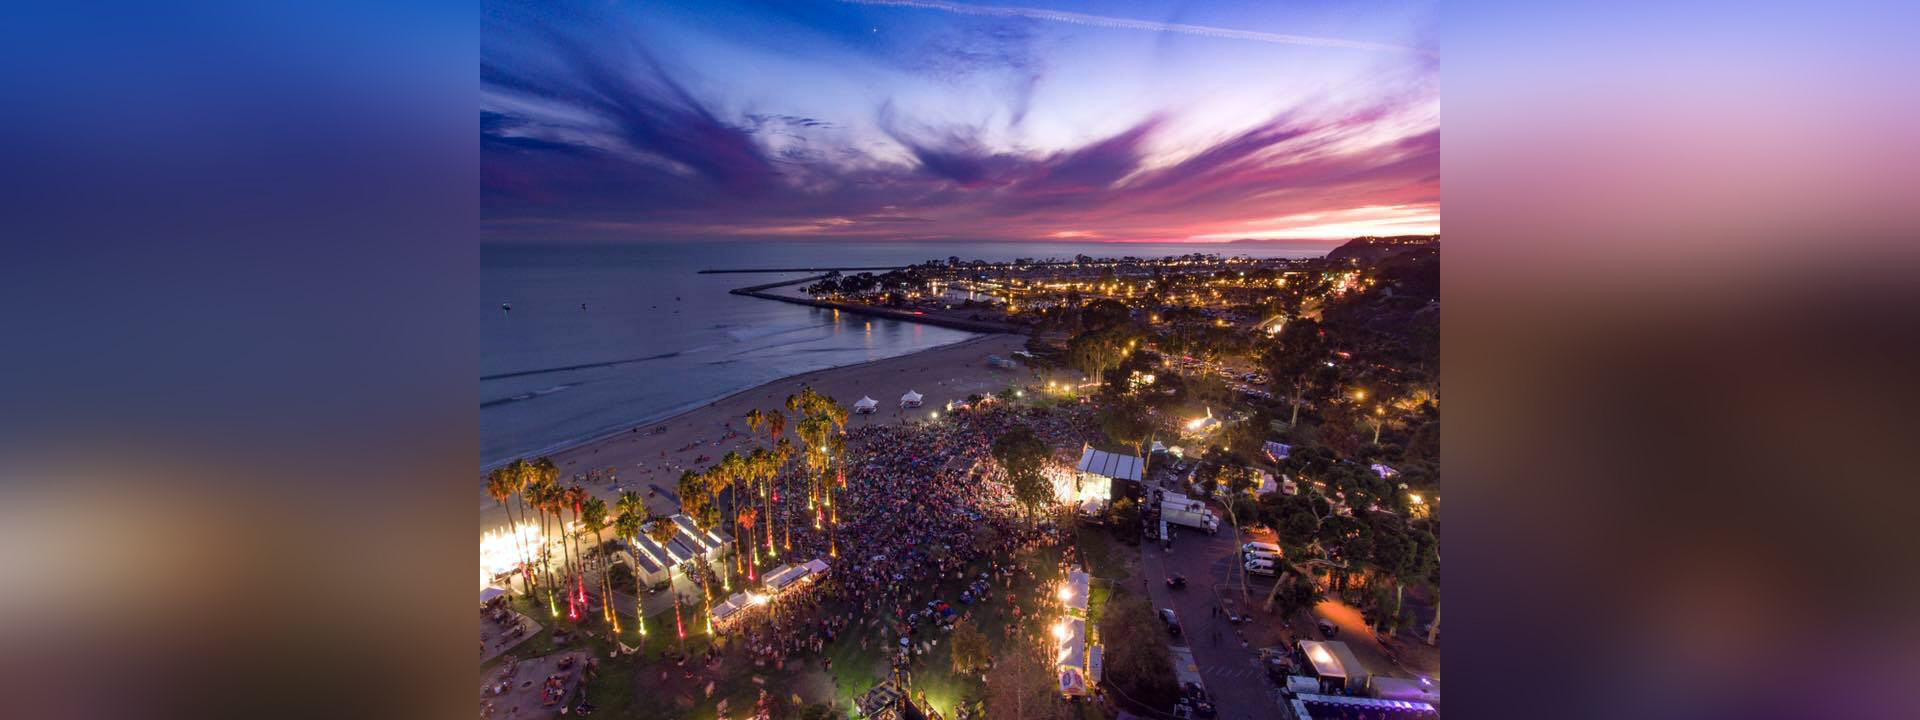 (Photo of Doheny State Beach event by Brian Bloss)